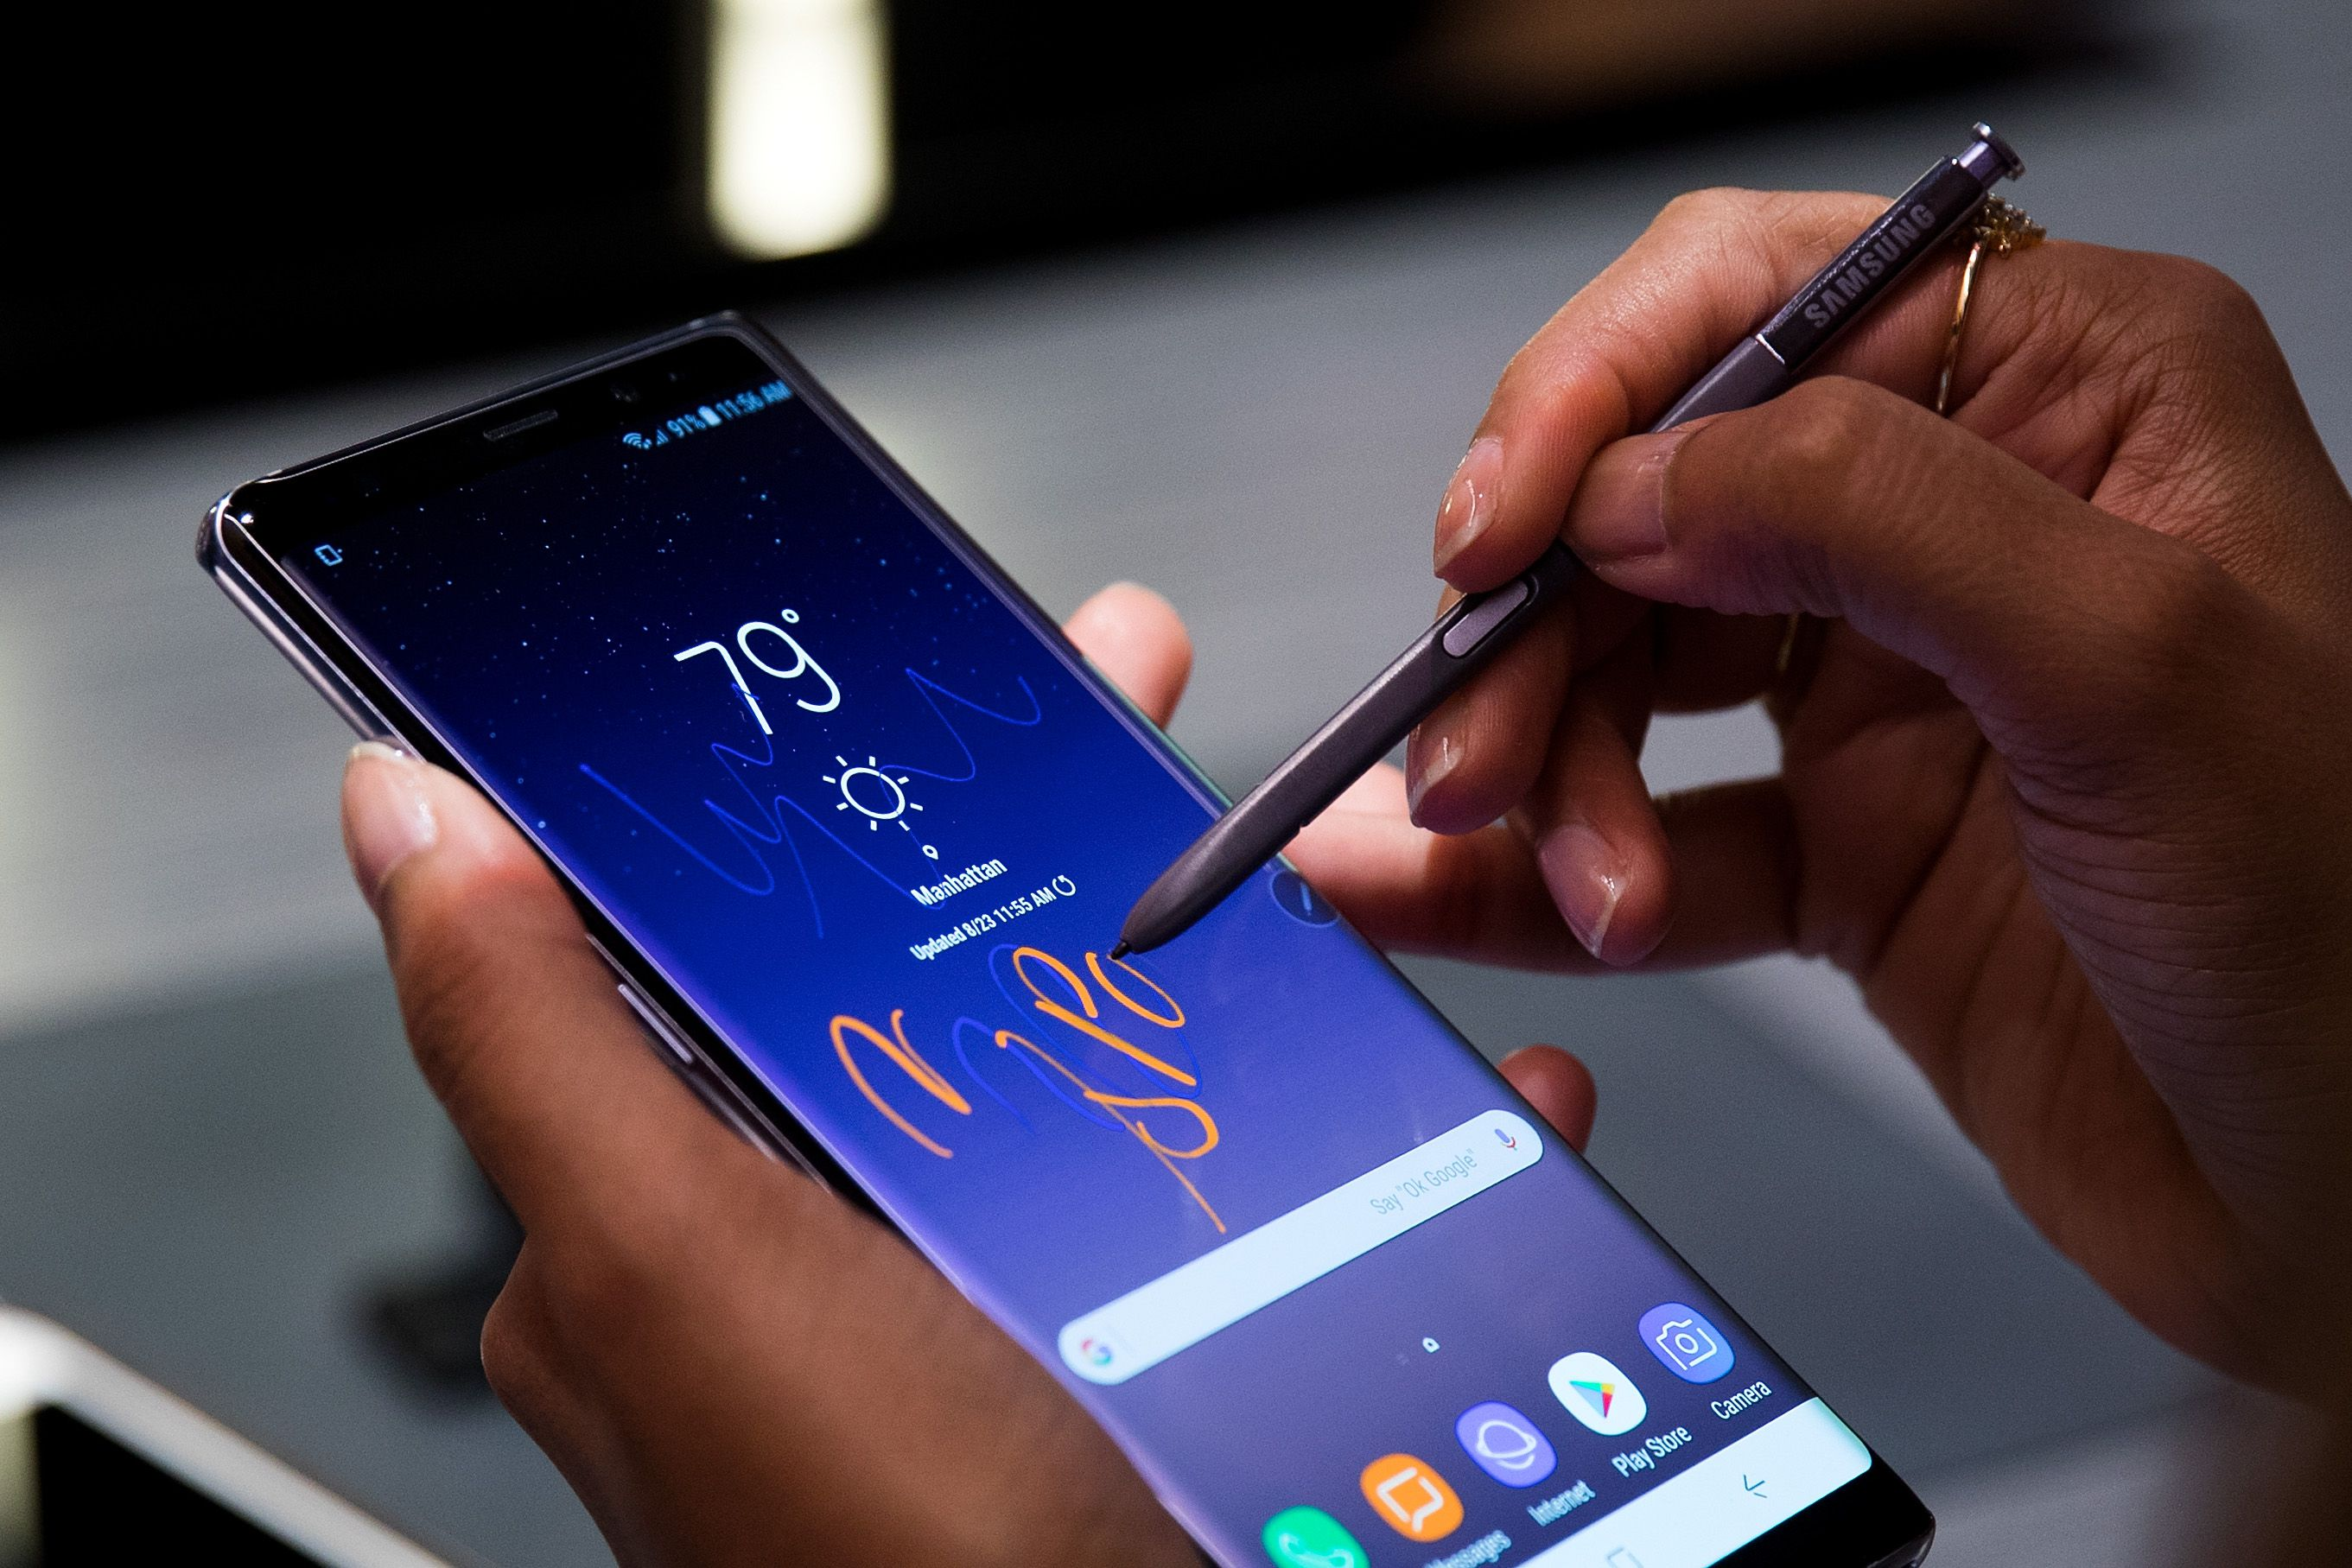 samsung introduces new galaxy note 8 5a2874caaad52b0036e